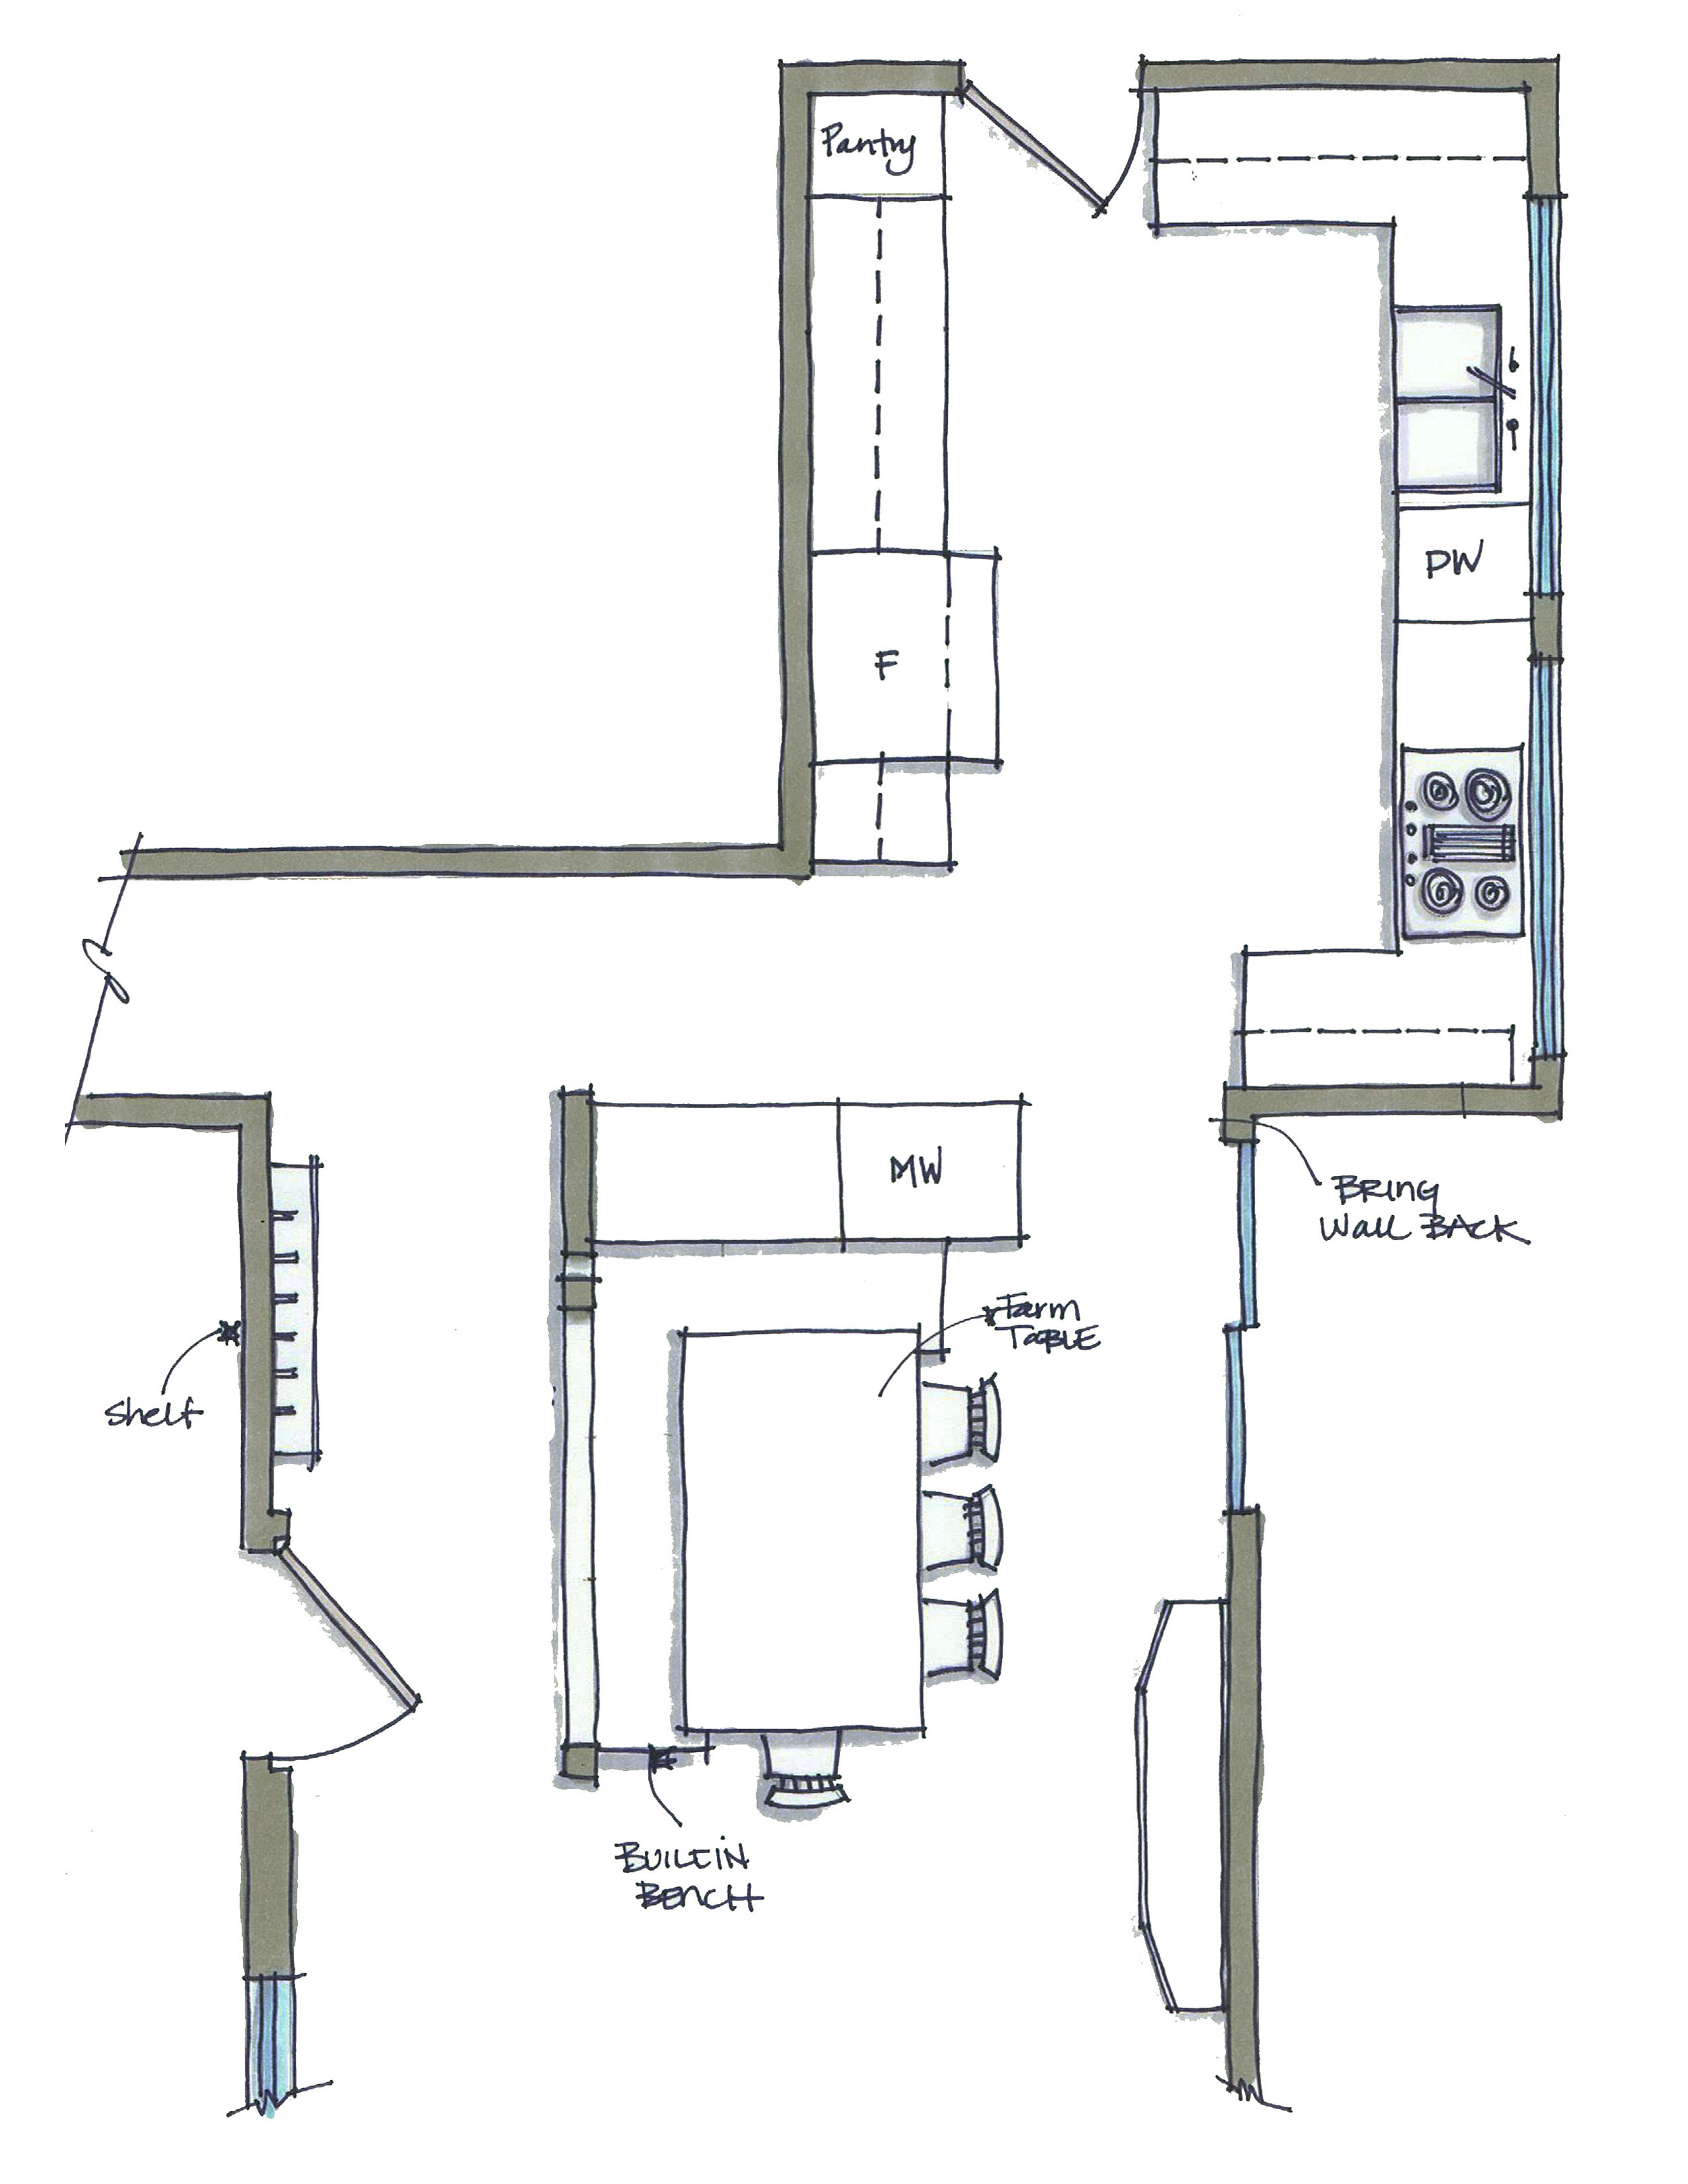 North Shirley Kitchen Floor Plan